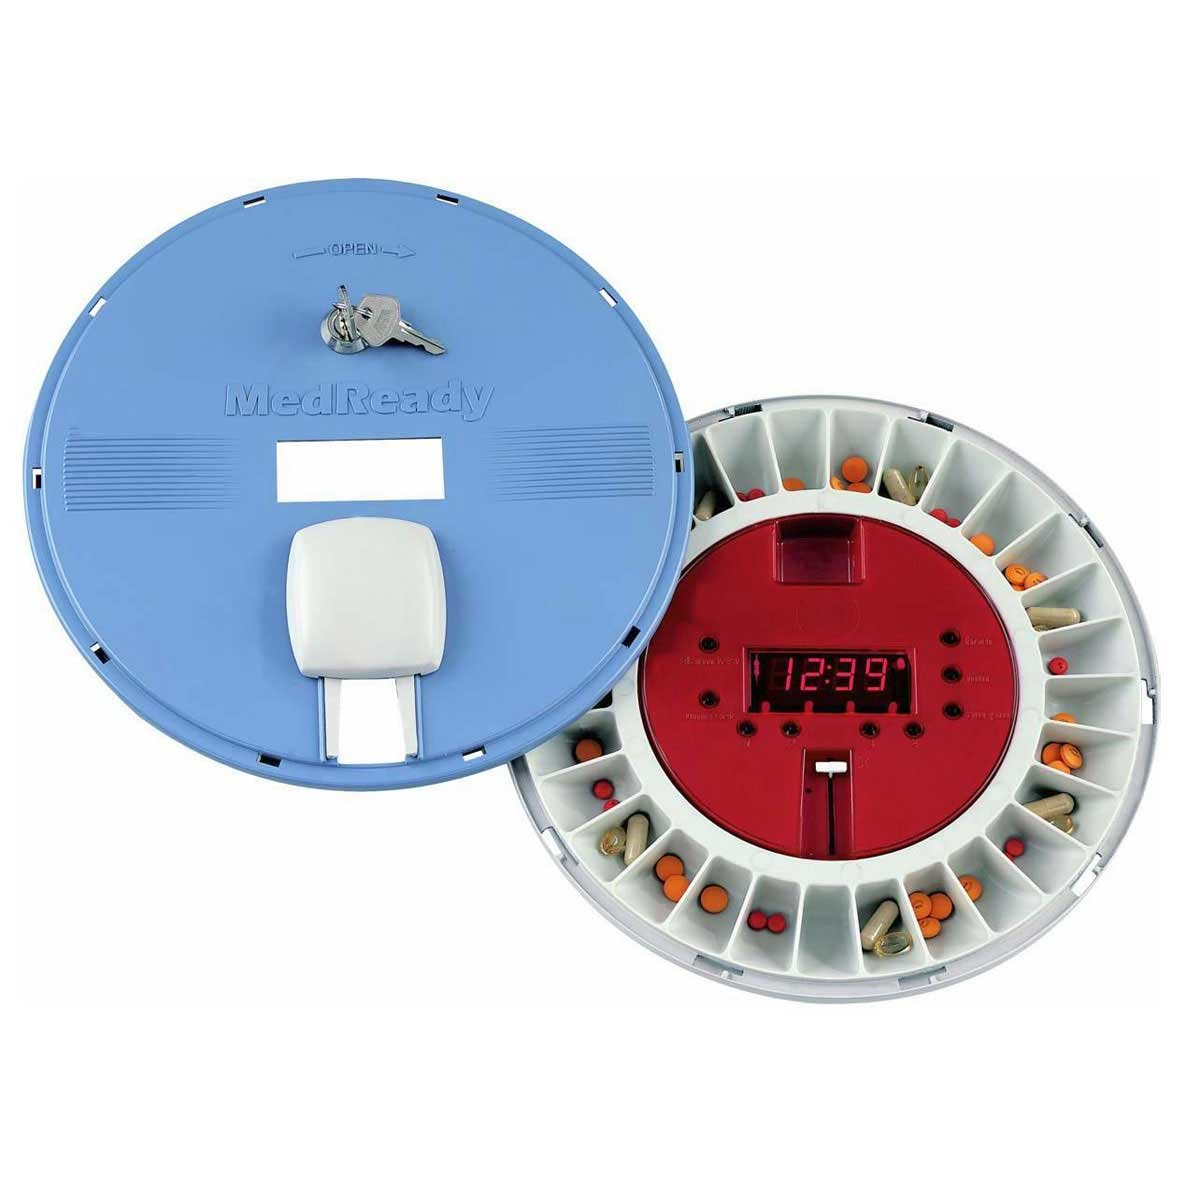 MedReady P1600 Medication Dispenser with Flashing Light and Lower Frequency Alarm by MedReady